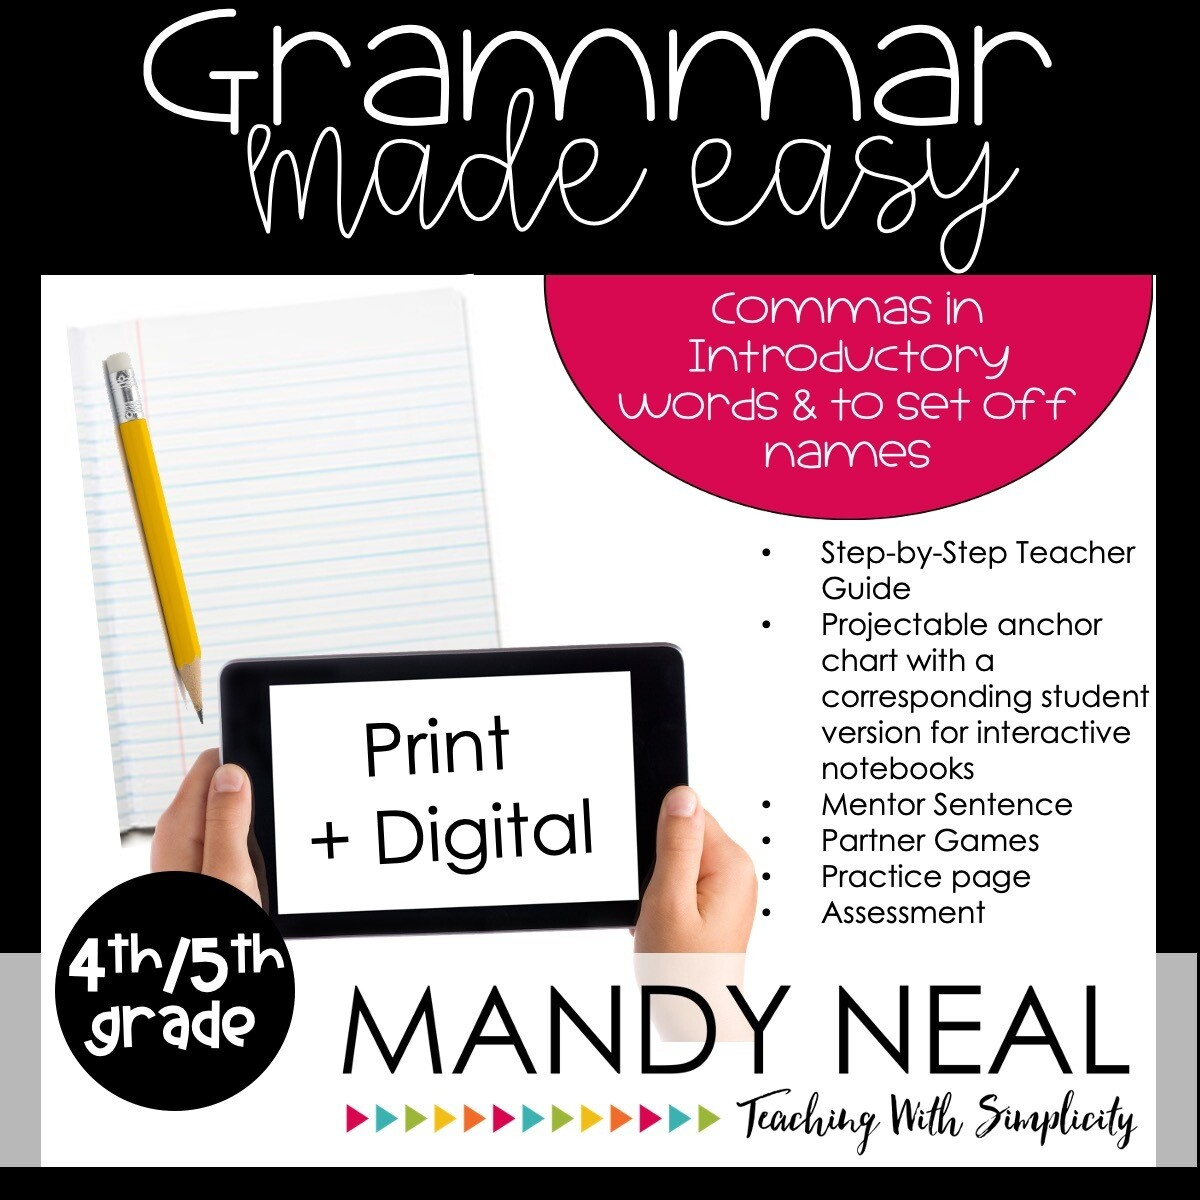 Print + Digital Fourth and Fifth Grade Grammar Activities (Introductory Phrases and Names)